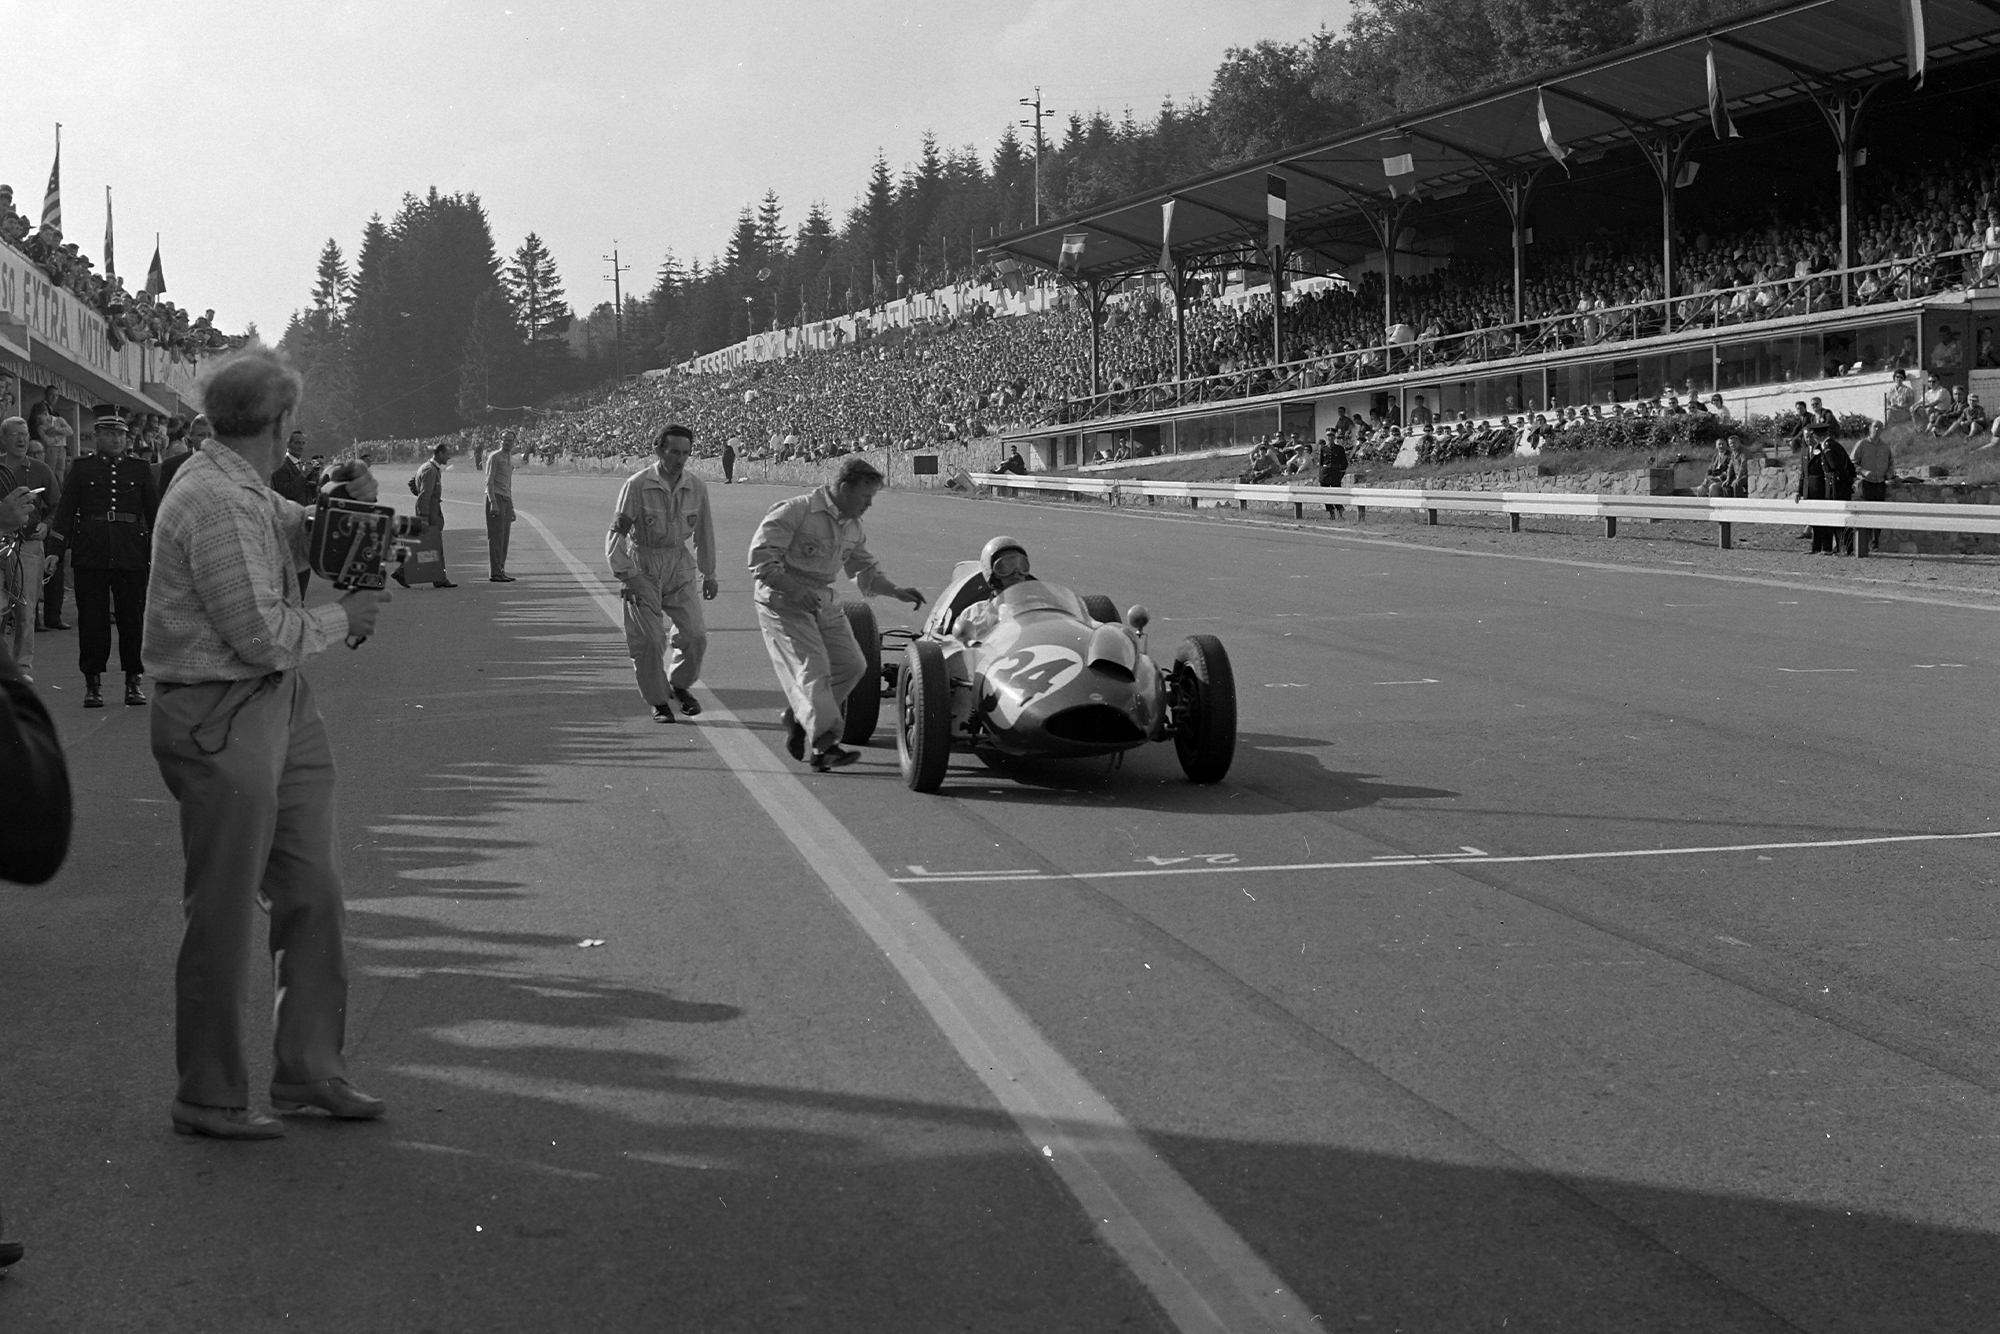 Gendebien leaves the Cooper pits